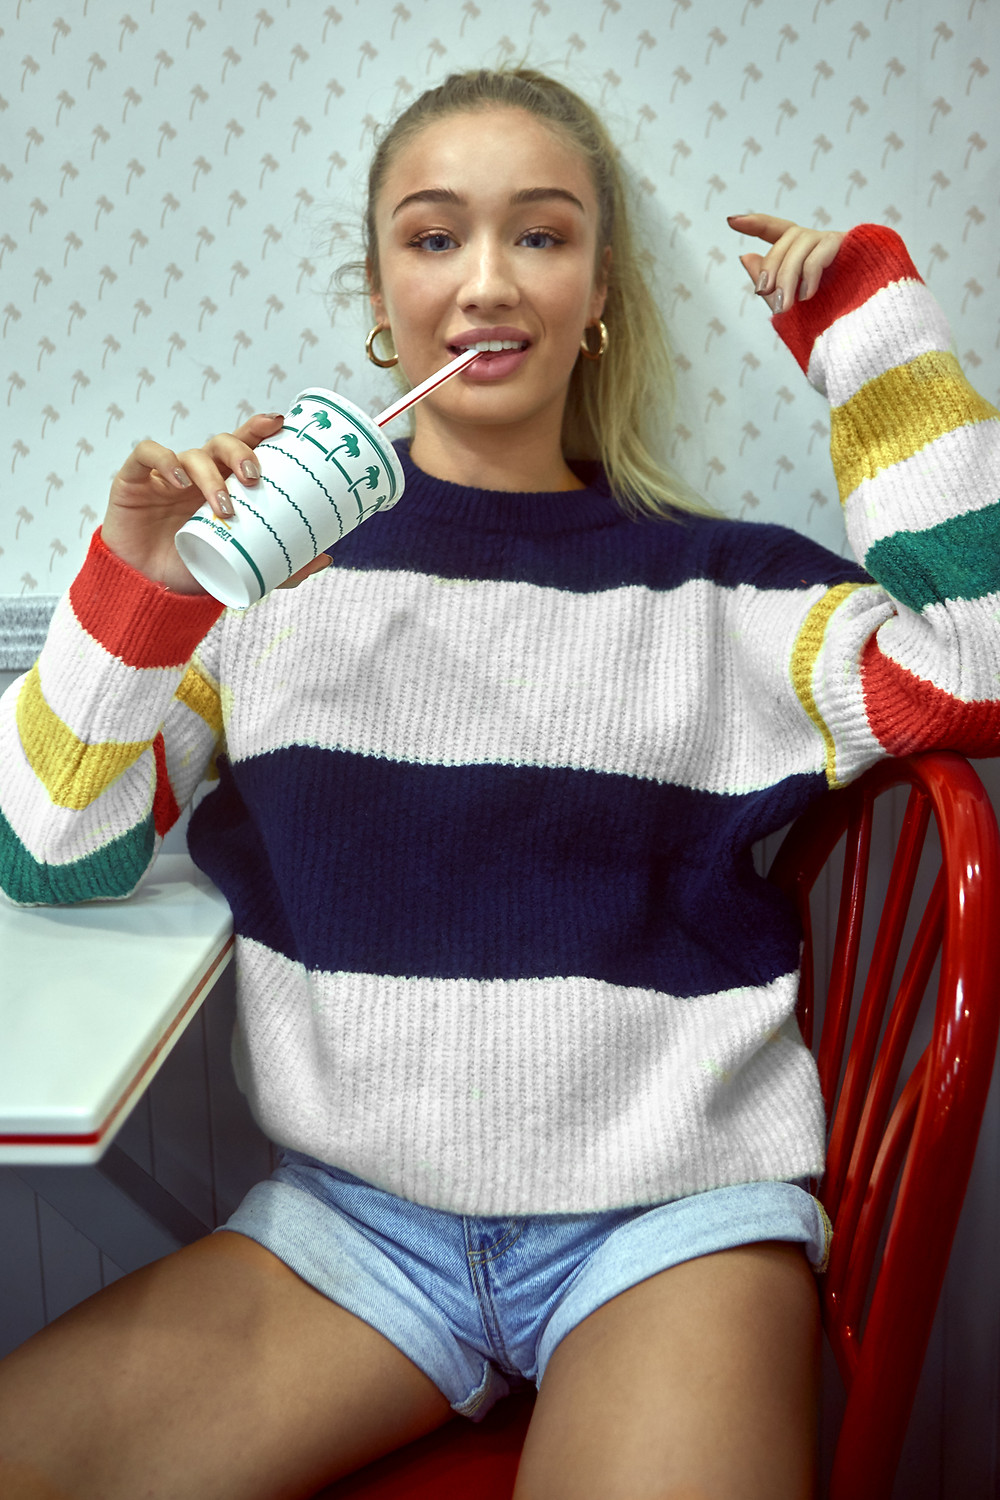 Manchester model Bethan Sowerby tries In N Out Burger for the first time.  Photographed by Patrick Patton, she wears denim shorts and a Truly Madly Deeply Caroline Stripe Sweater from Urban Outfitters while sipping on a strawberry milkshake.